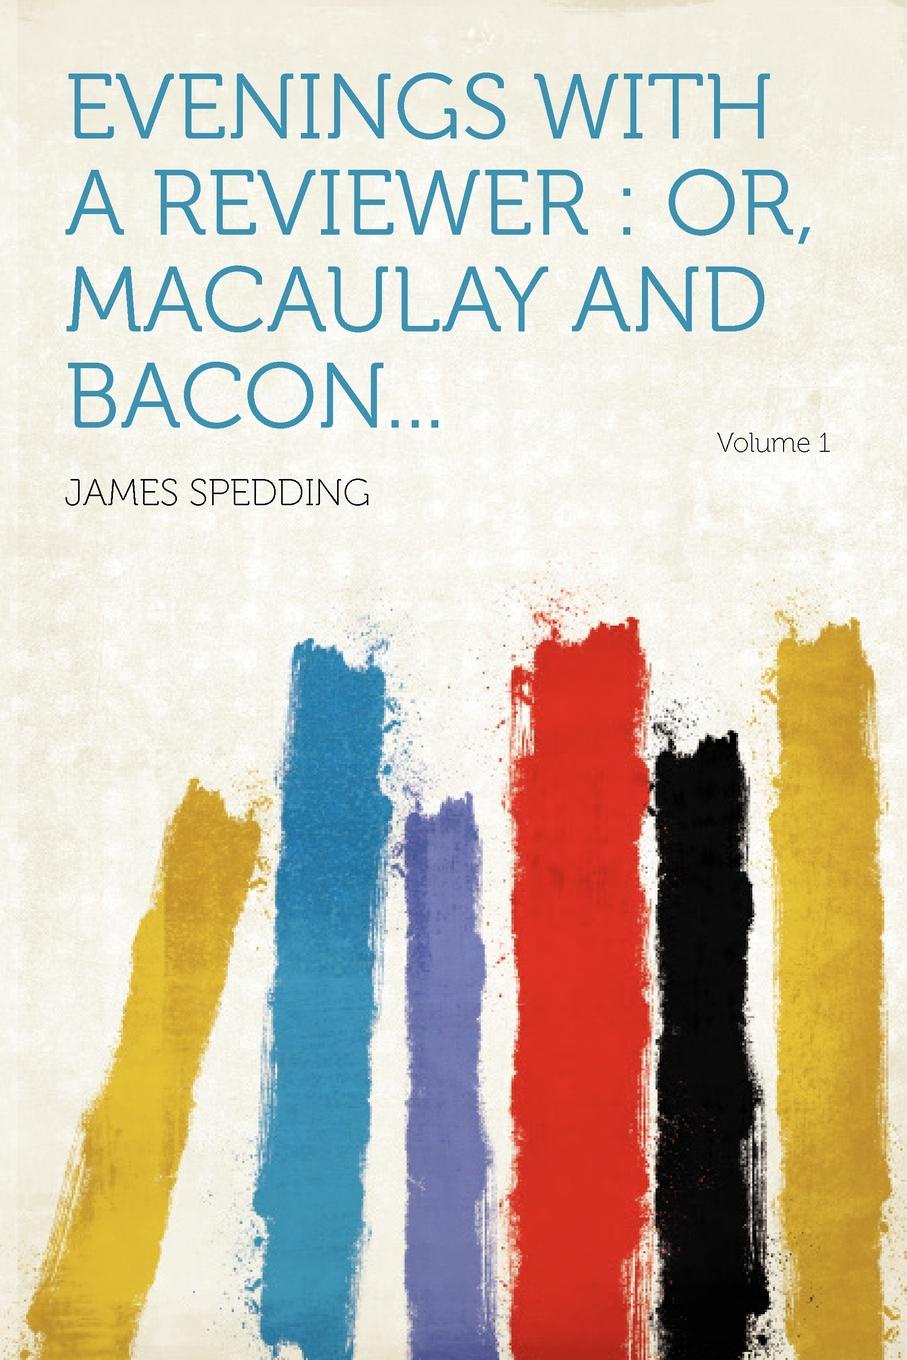 Evenings With a Reviewer. Or, Macaulay and Bacon... Volume 1.